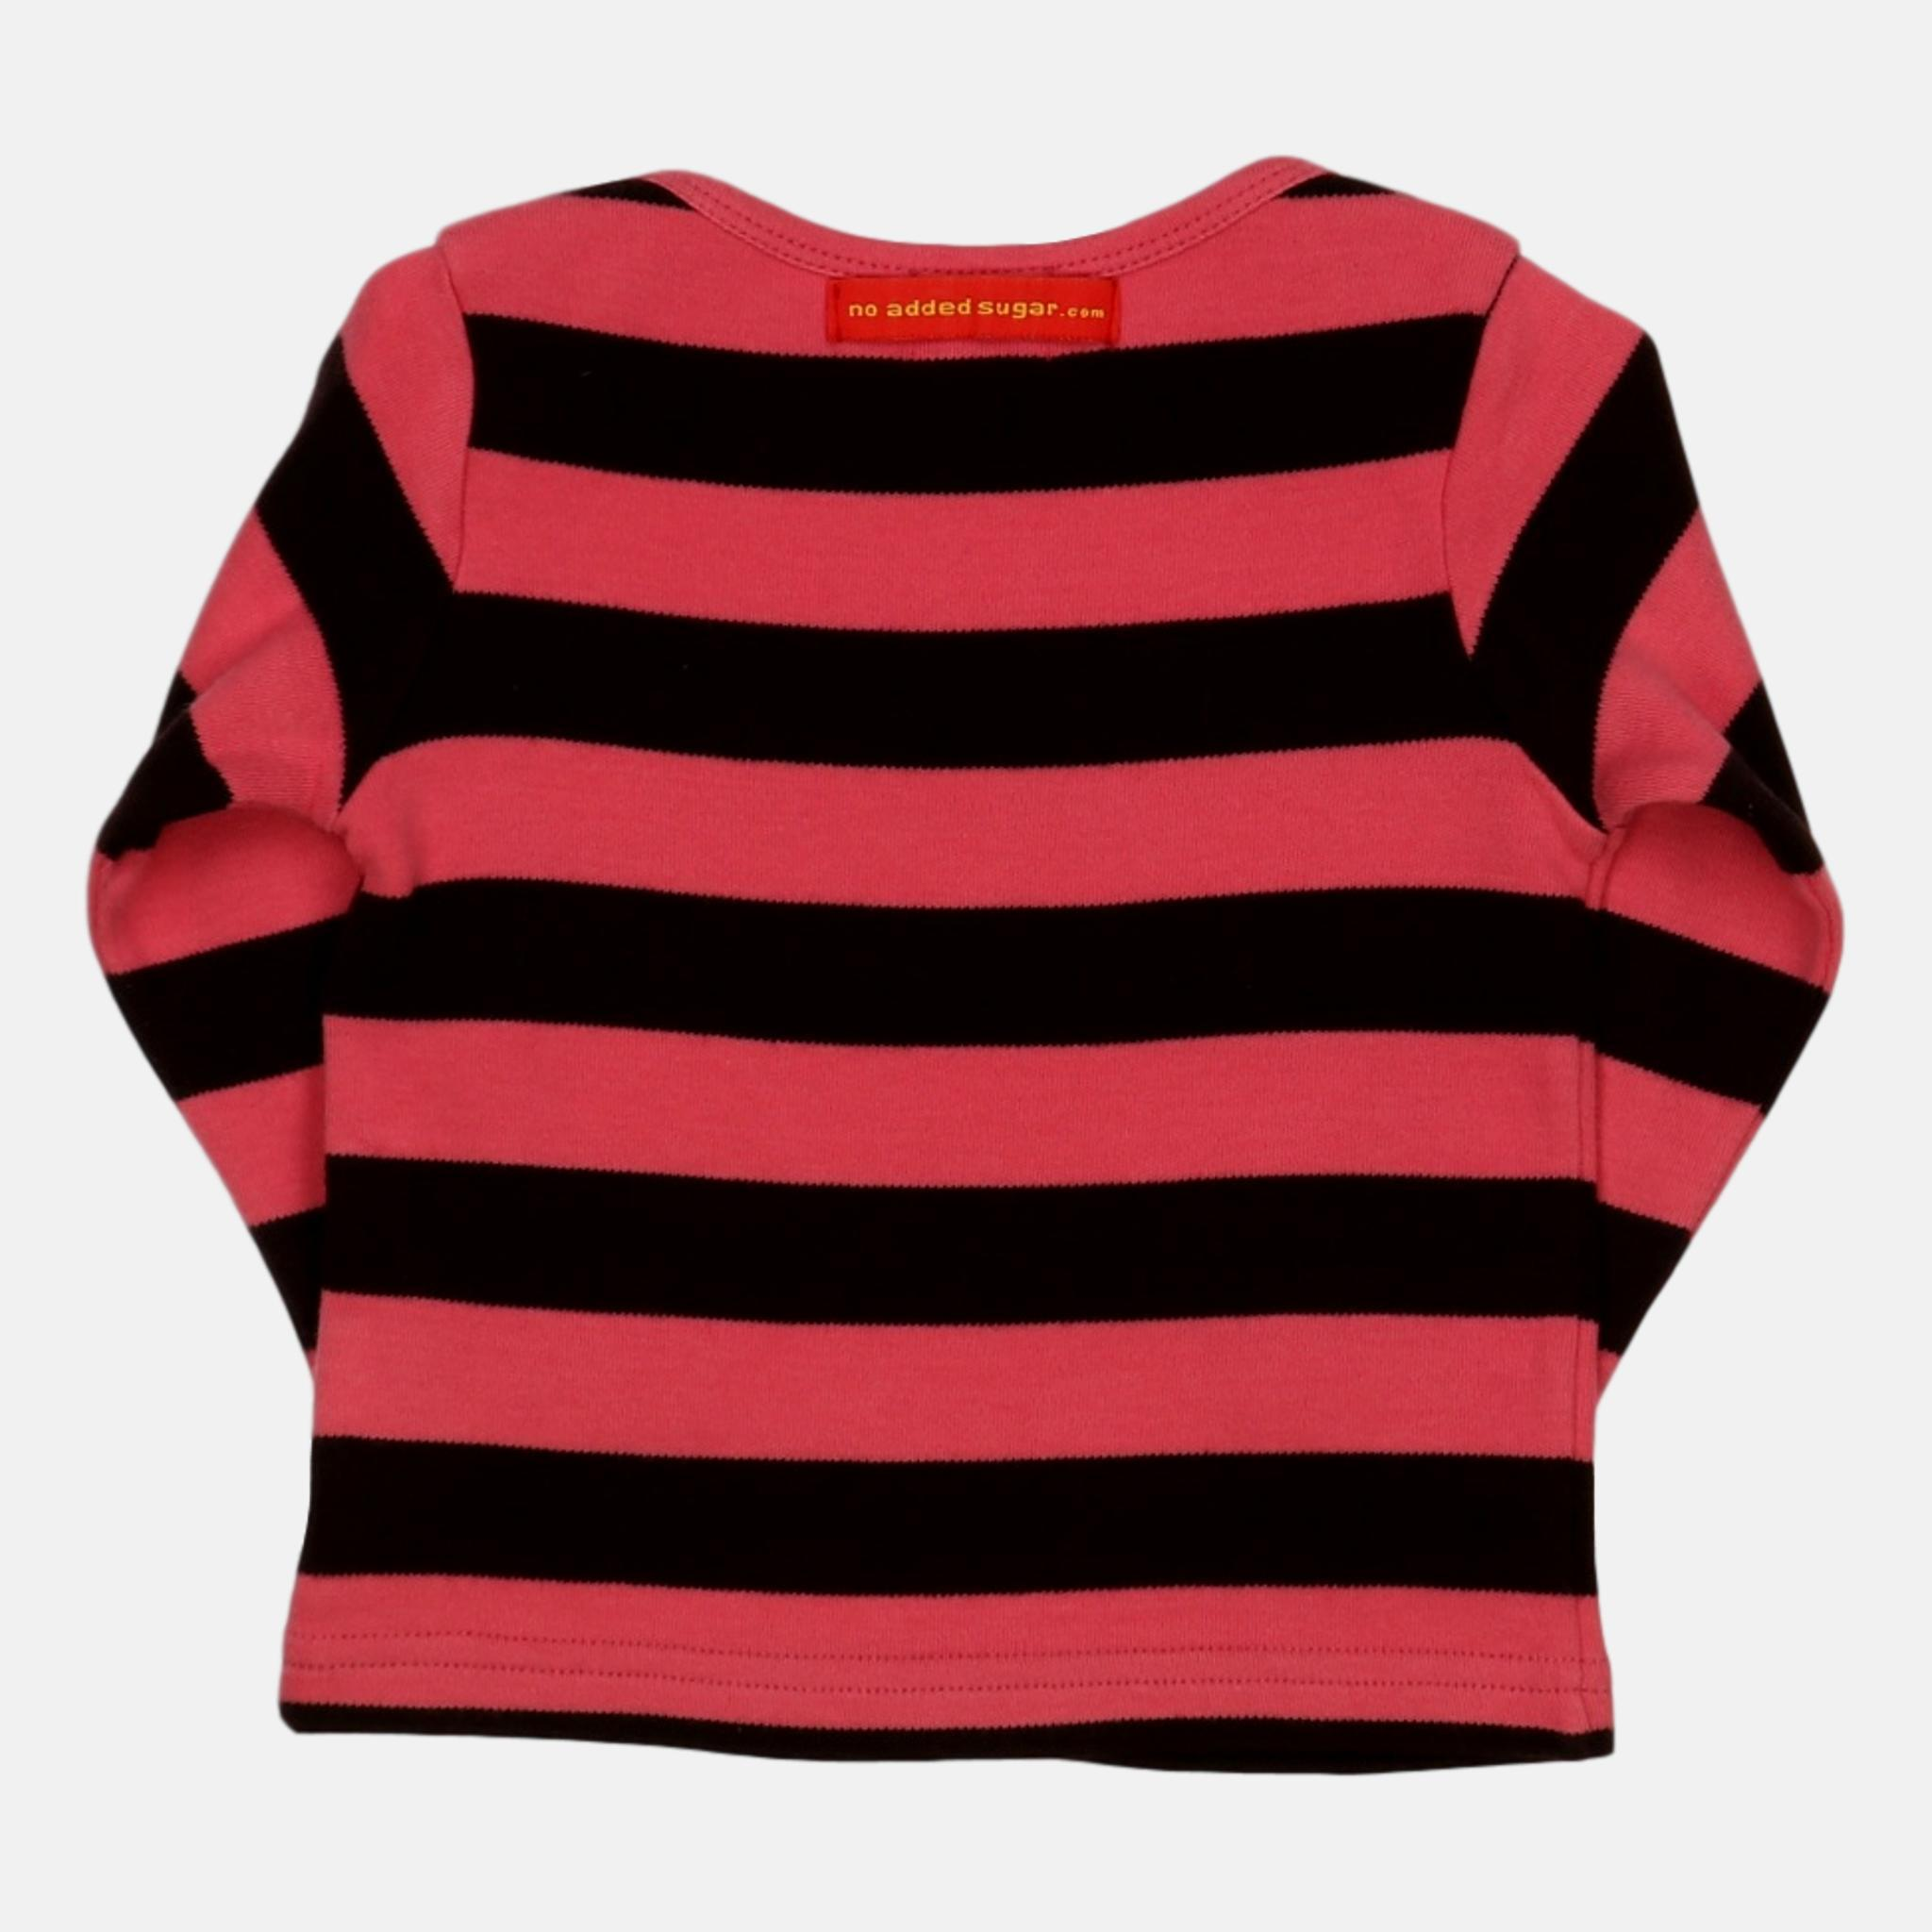 Long Sleeve T-Shirt, 12-18 Months